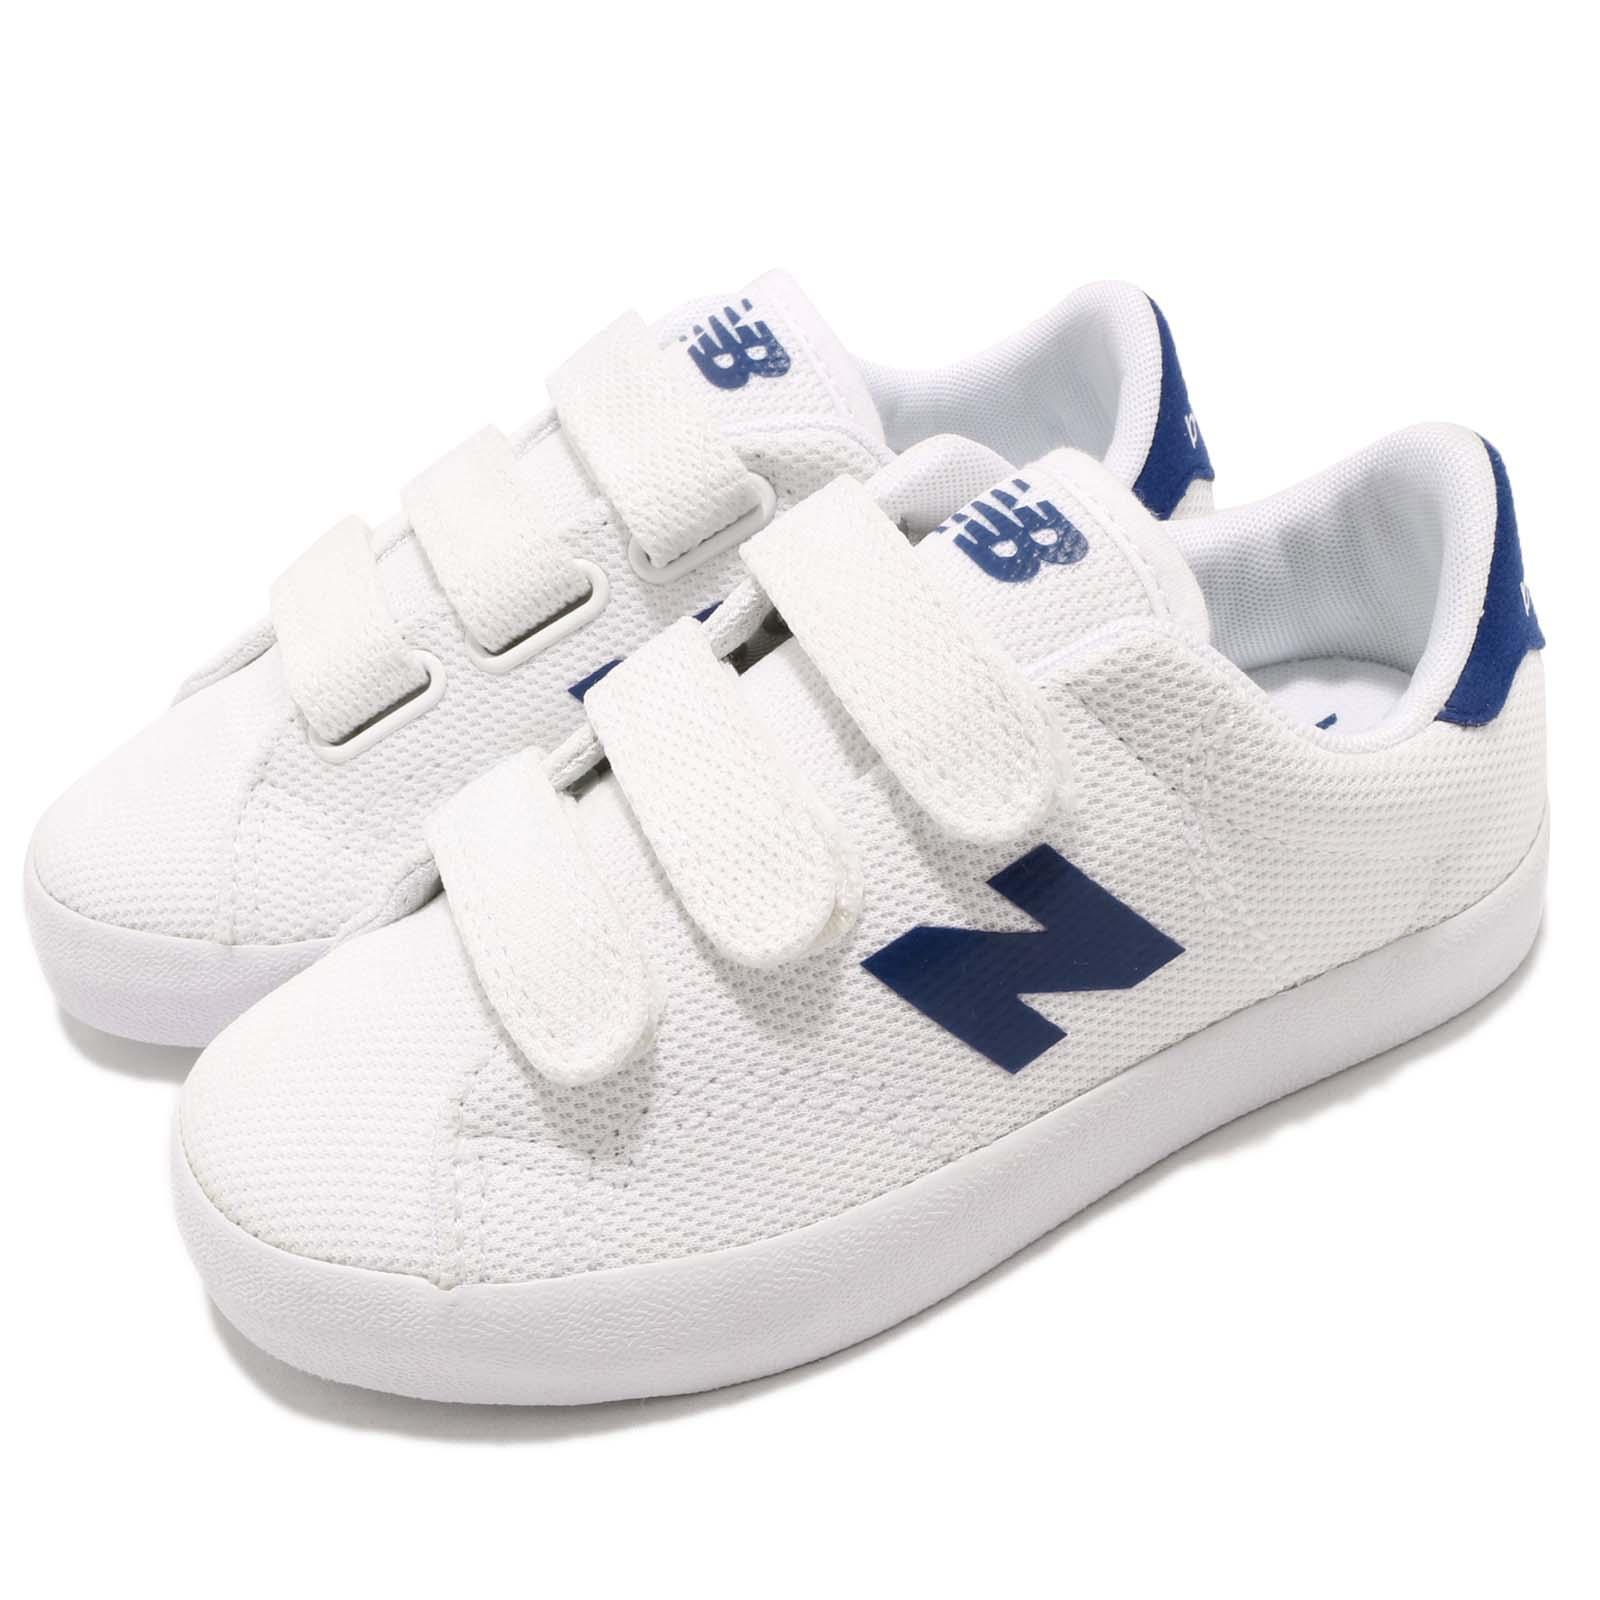 75ad10211cf Details about New Balance KVCRTBLP W Wide White Blue Kid Youth Casual Shoes  Sneakers KVCRTBLPW